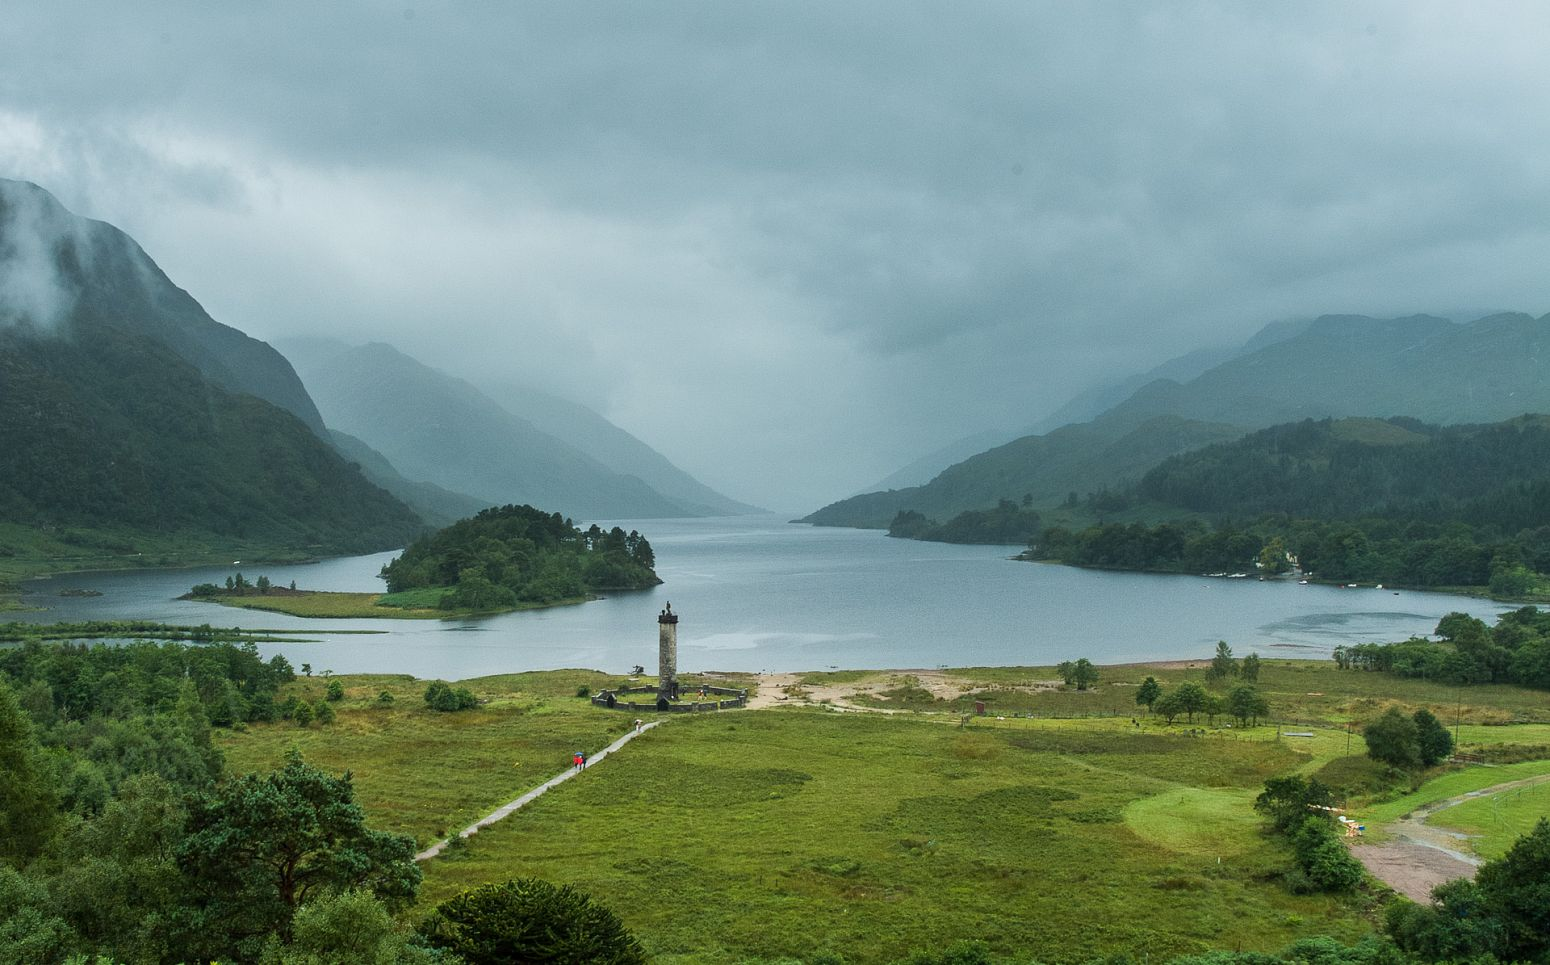 Loch Schiel and Glenfinnan Monument, Scotland